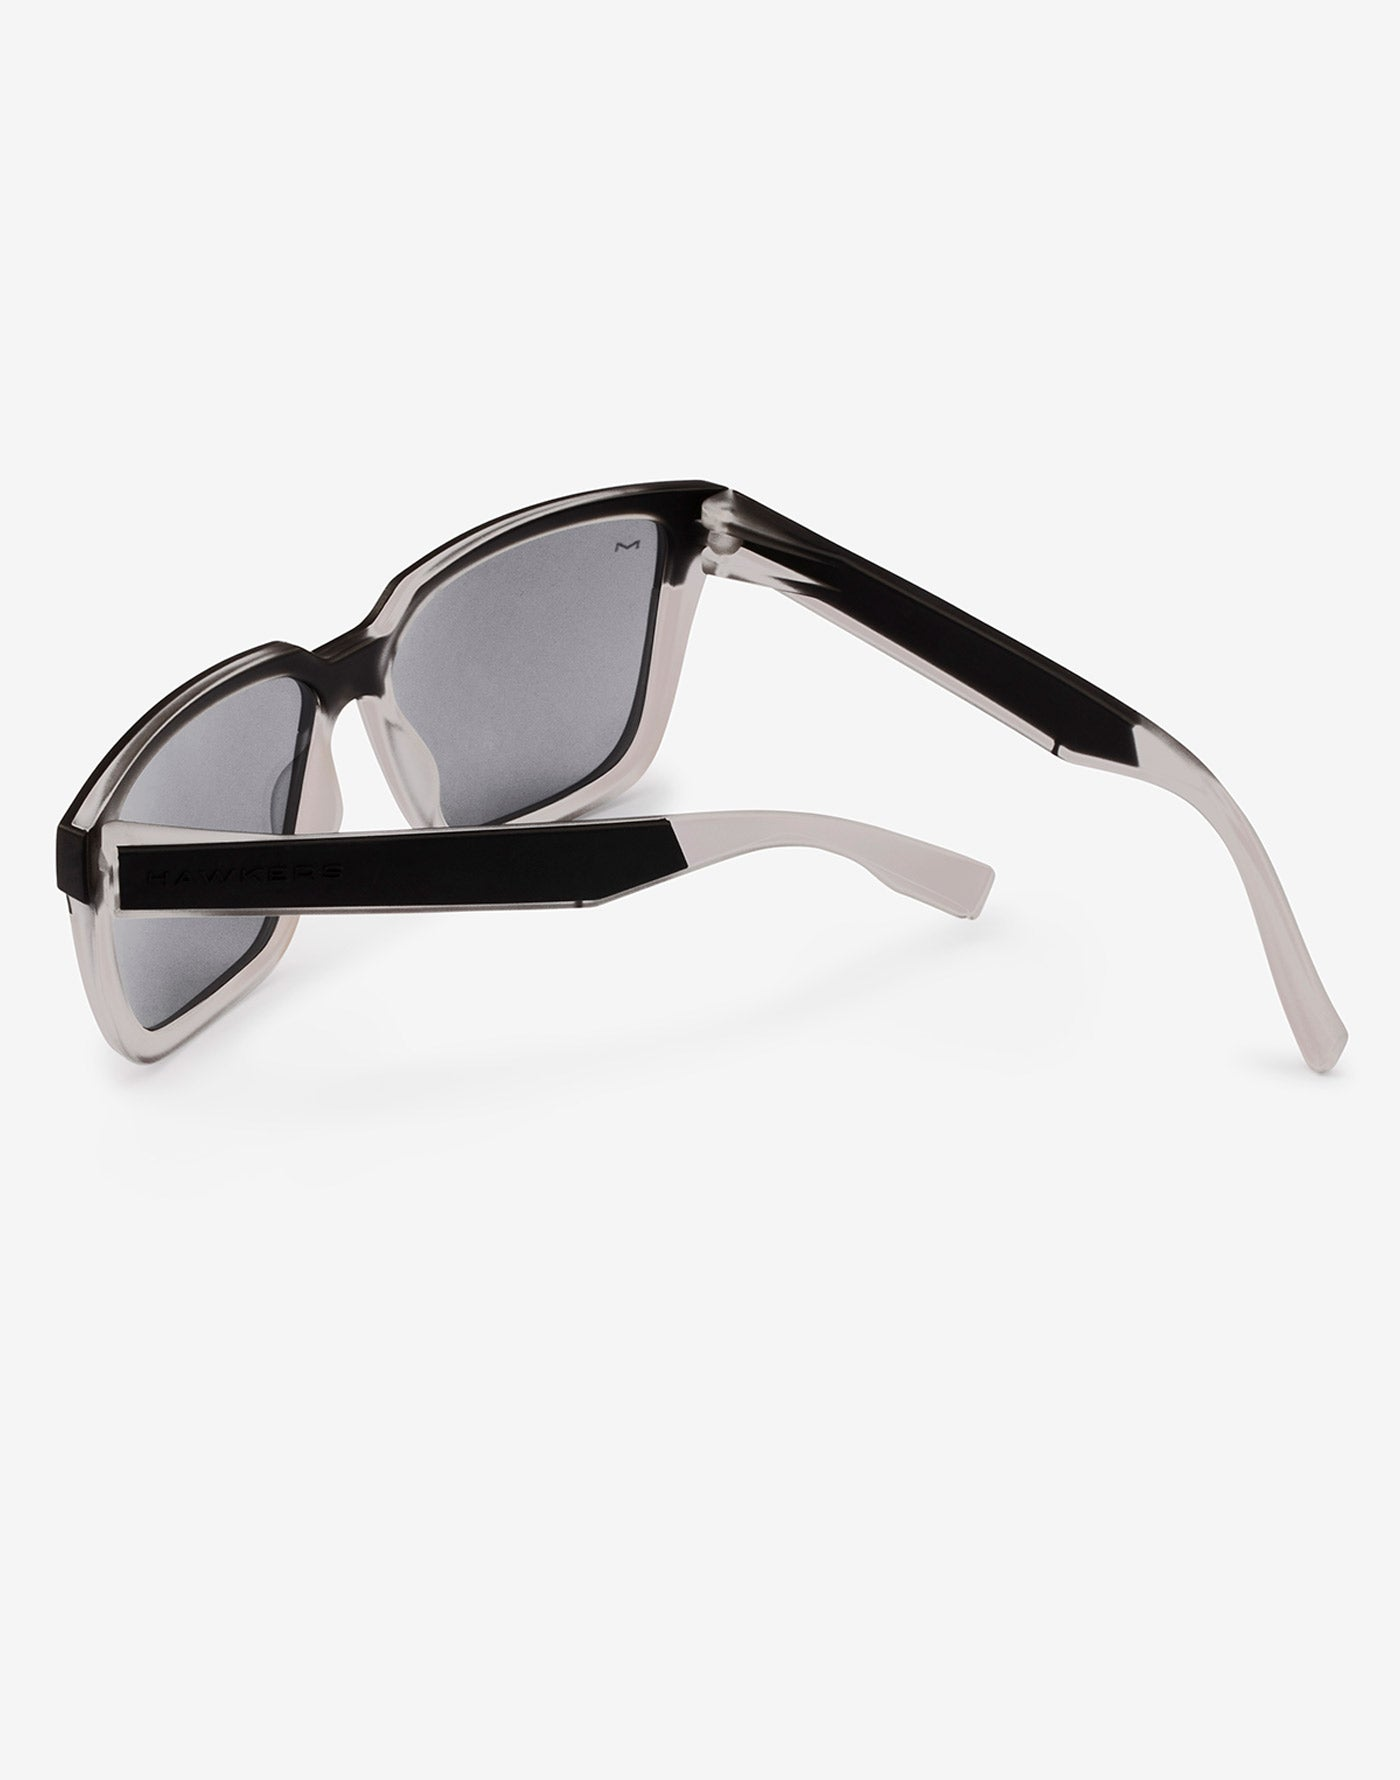 bd48fef0bd8e Sunglasses Hawkers Black Frozen Grey Chrome Motion S Strong